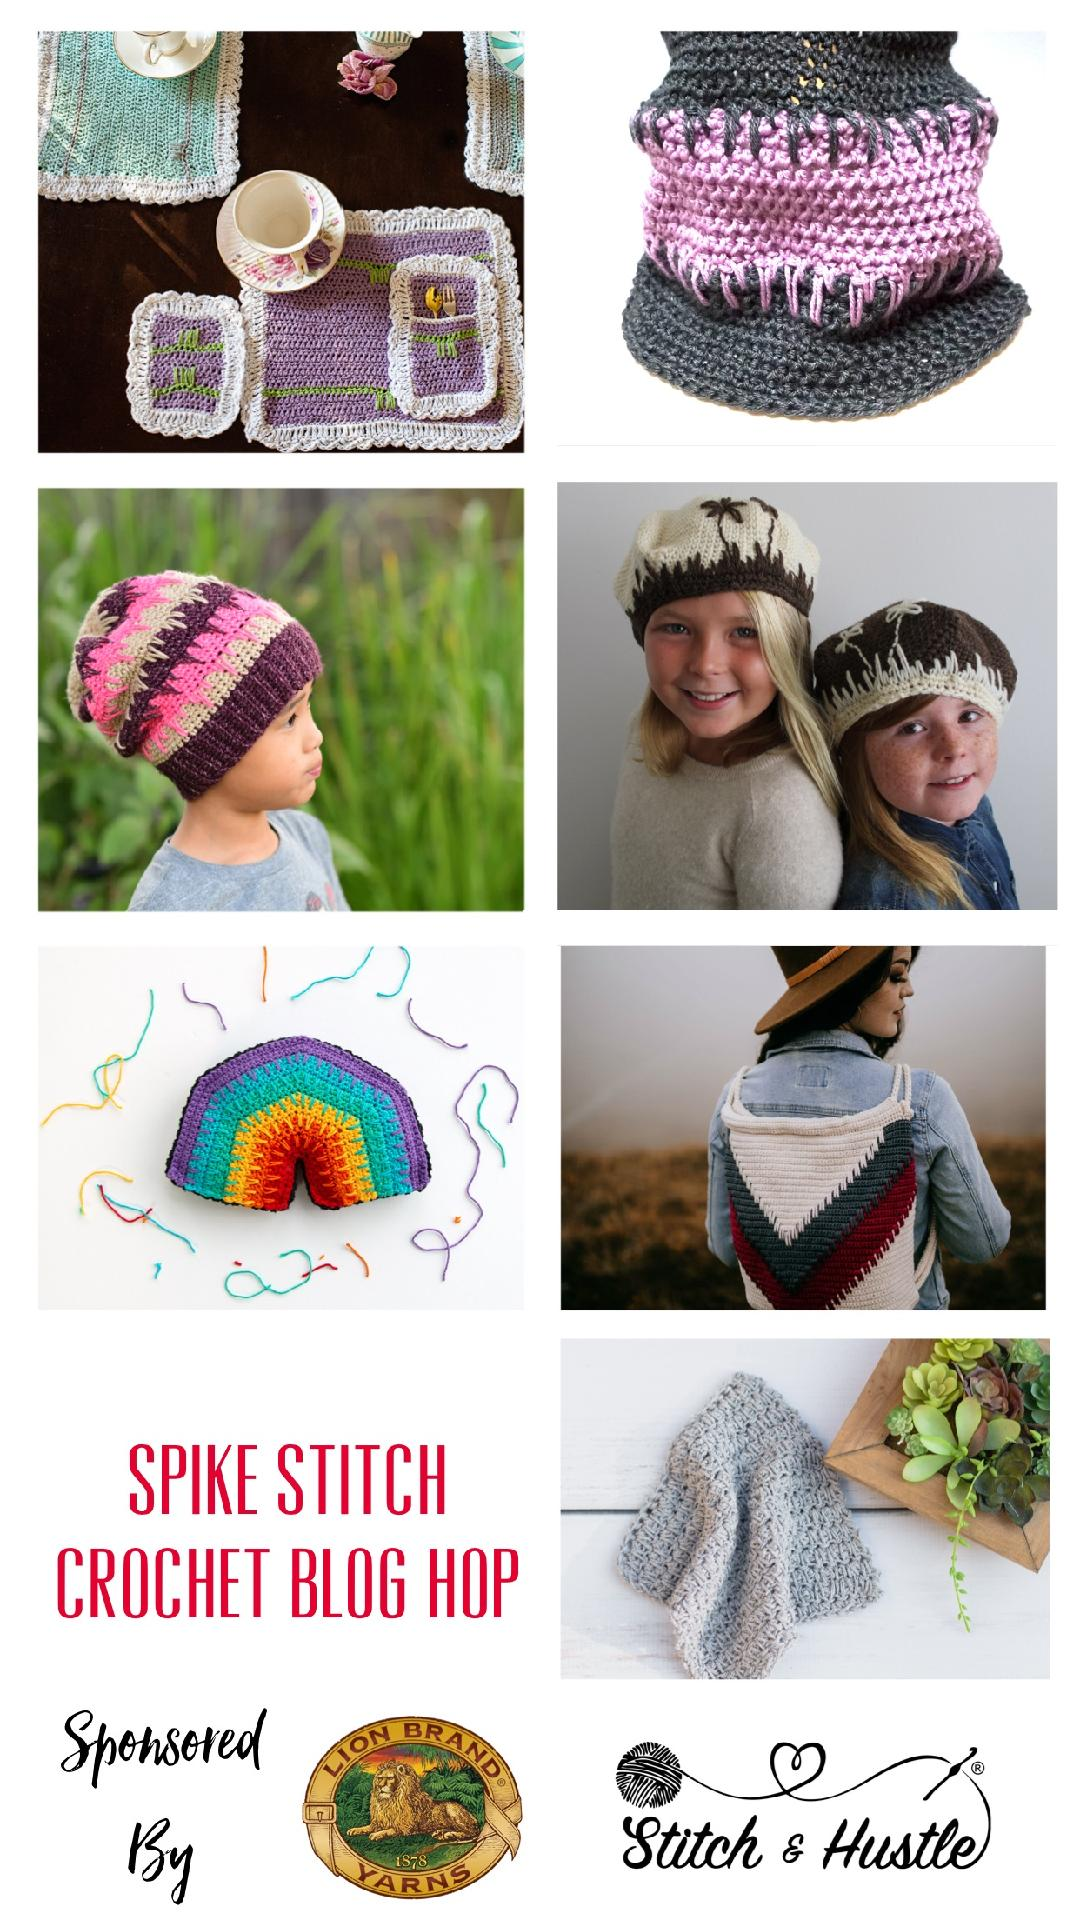 Join us for the Spike Stitch Crochet Blog Hop!!! 7 fantastic designs. Enter to win great prizes!